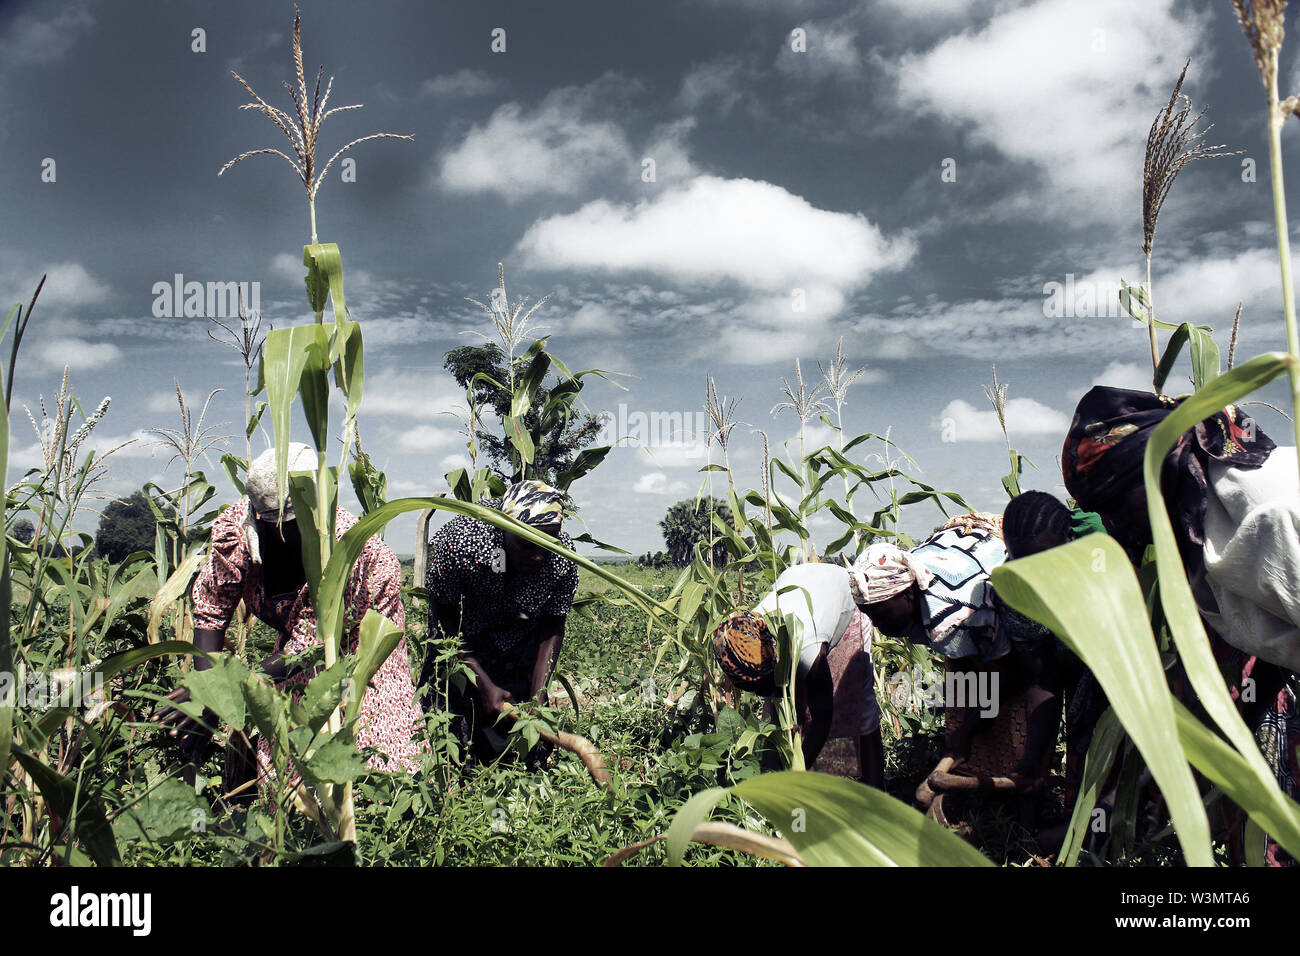 Displaced women, some of whom are widows, on a farm - Stock Image